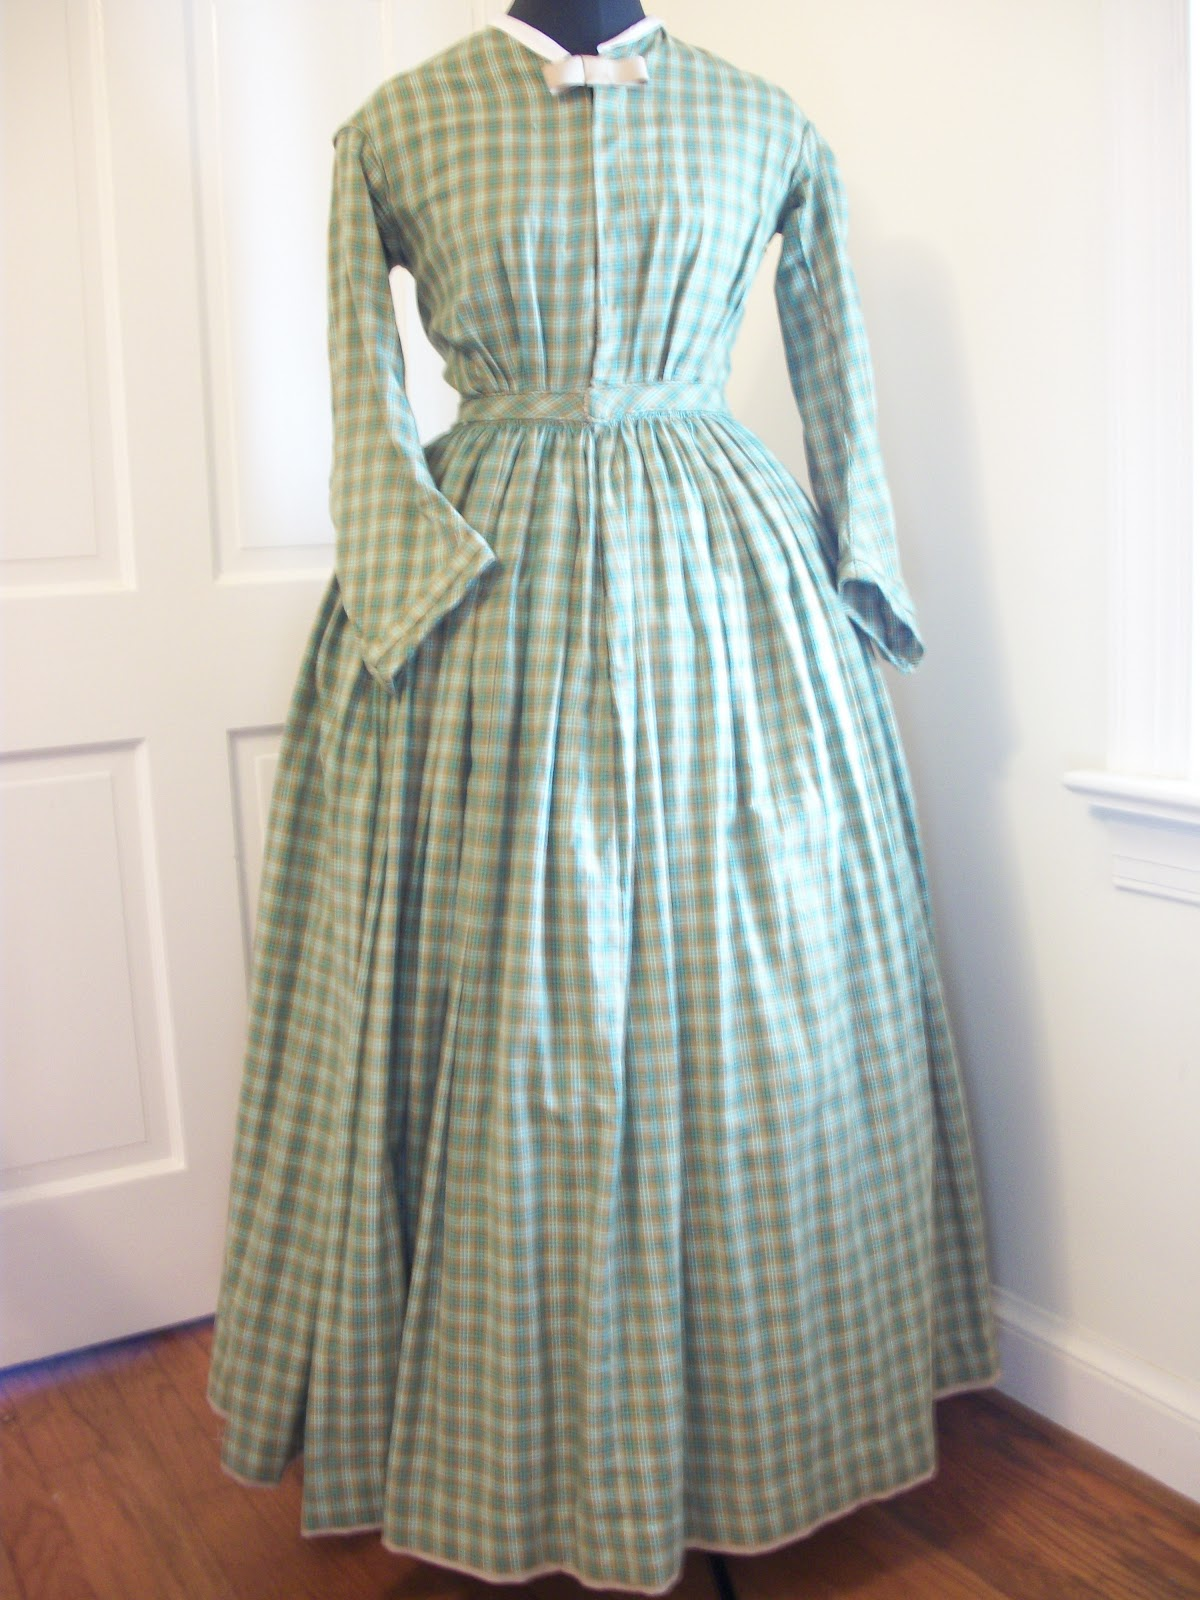 Retrospect: Green Plaid Civil War Dress